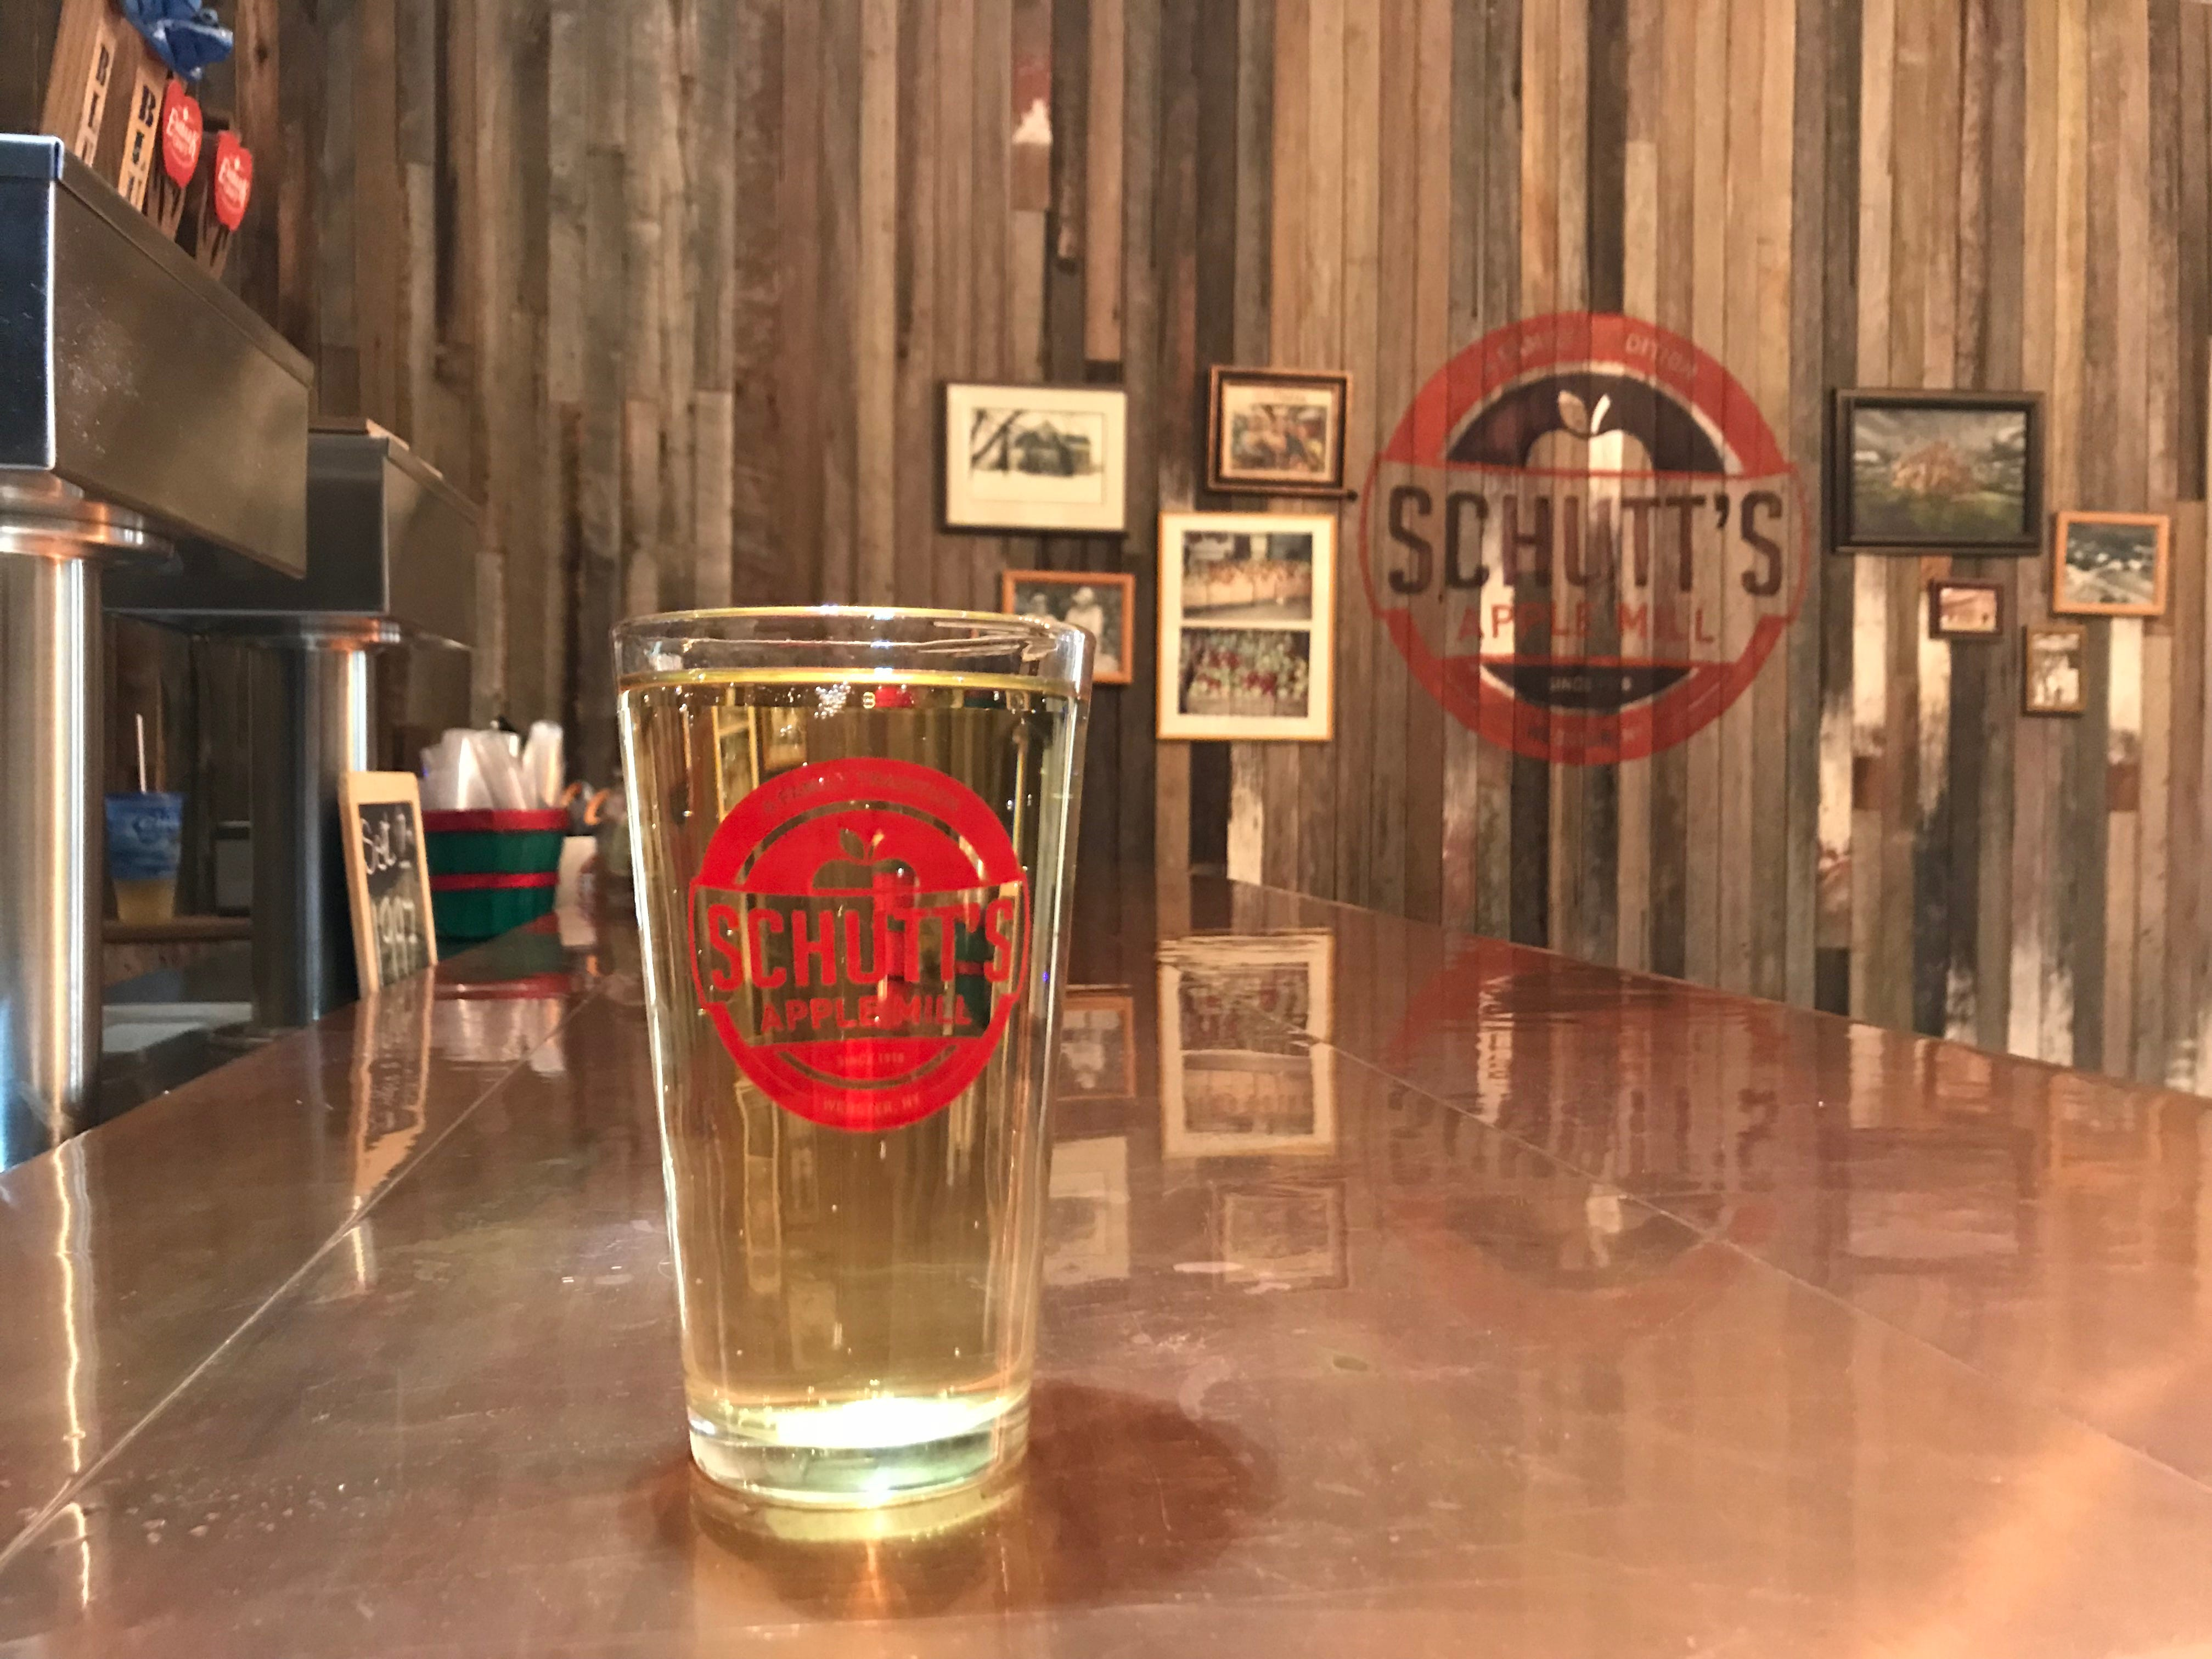 The expansion of Schutt's Apple Mill includes a tasting room for hard cider.